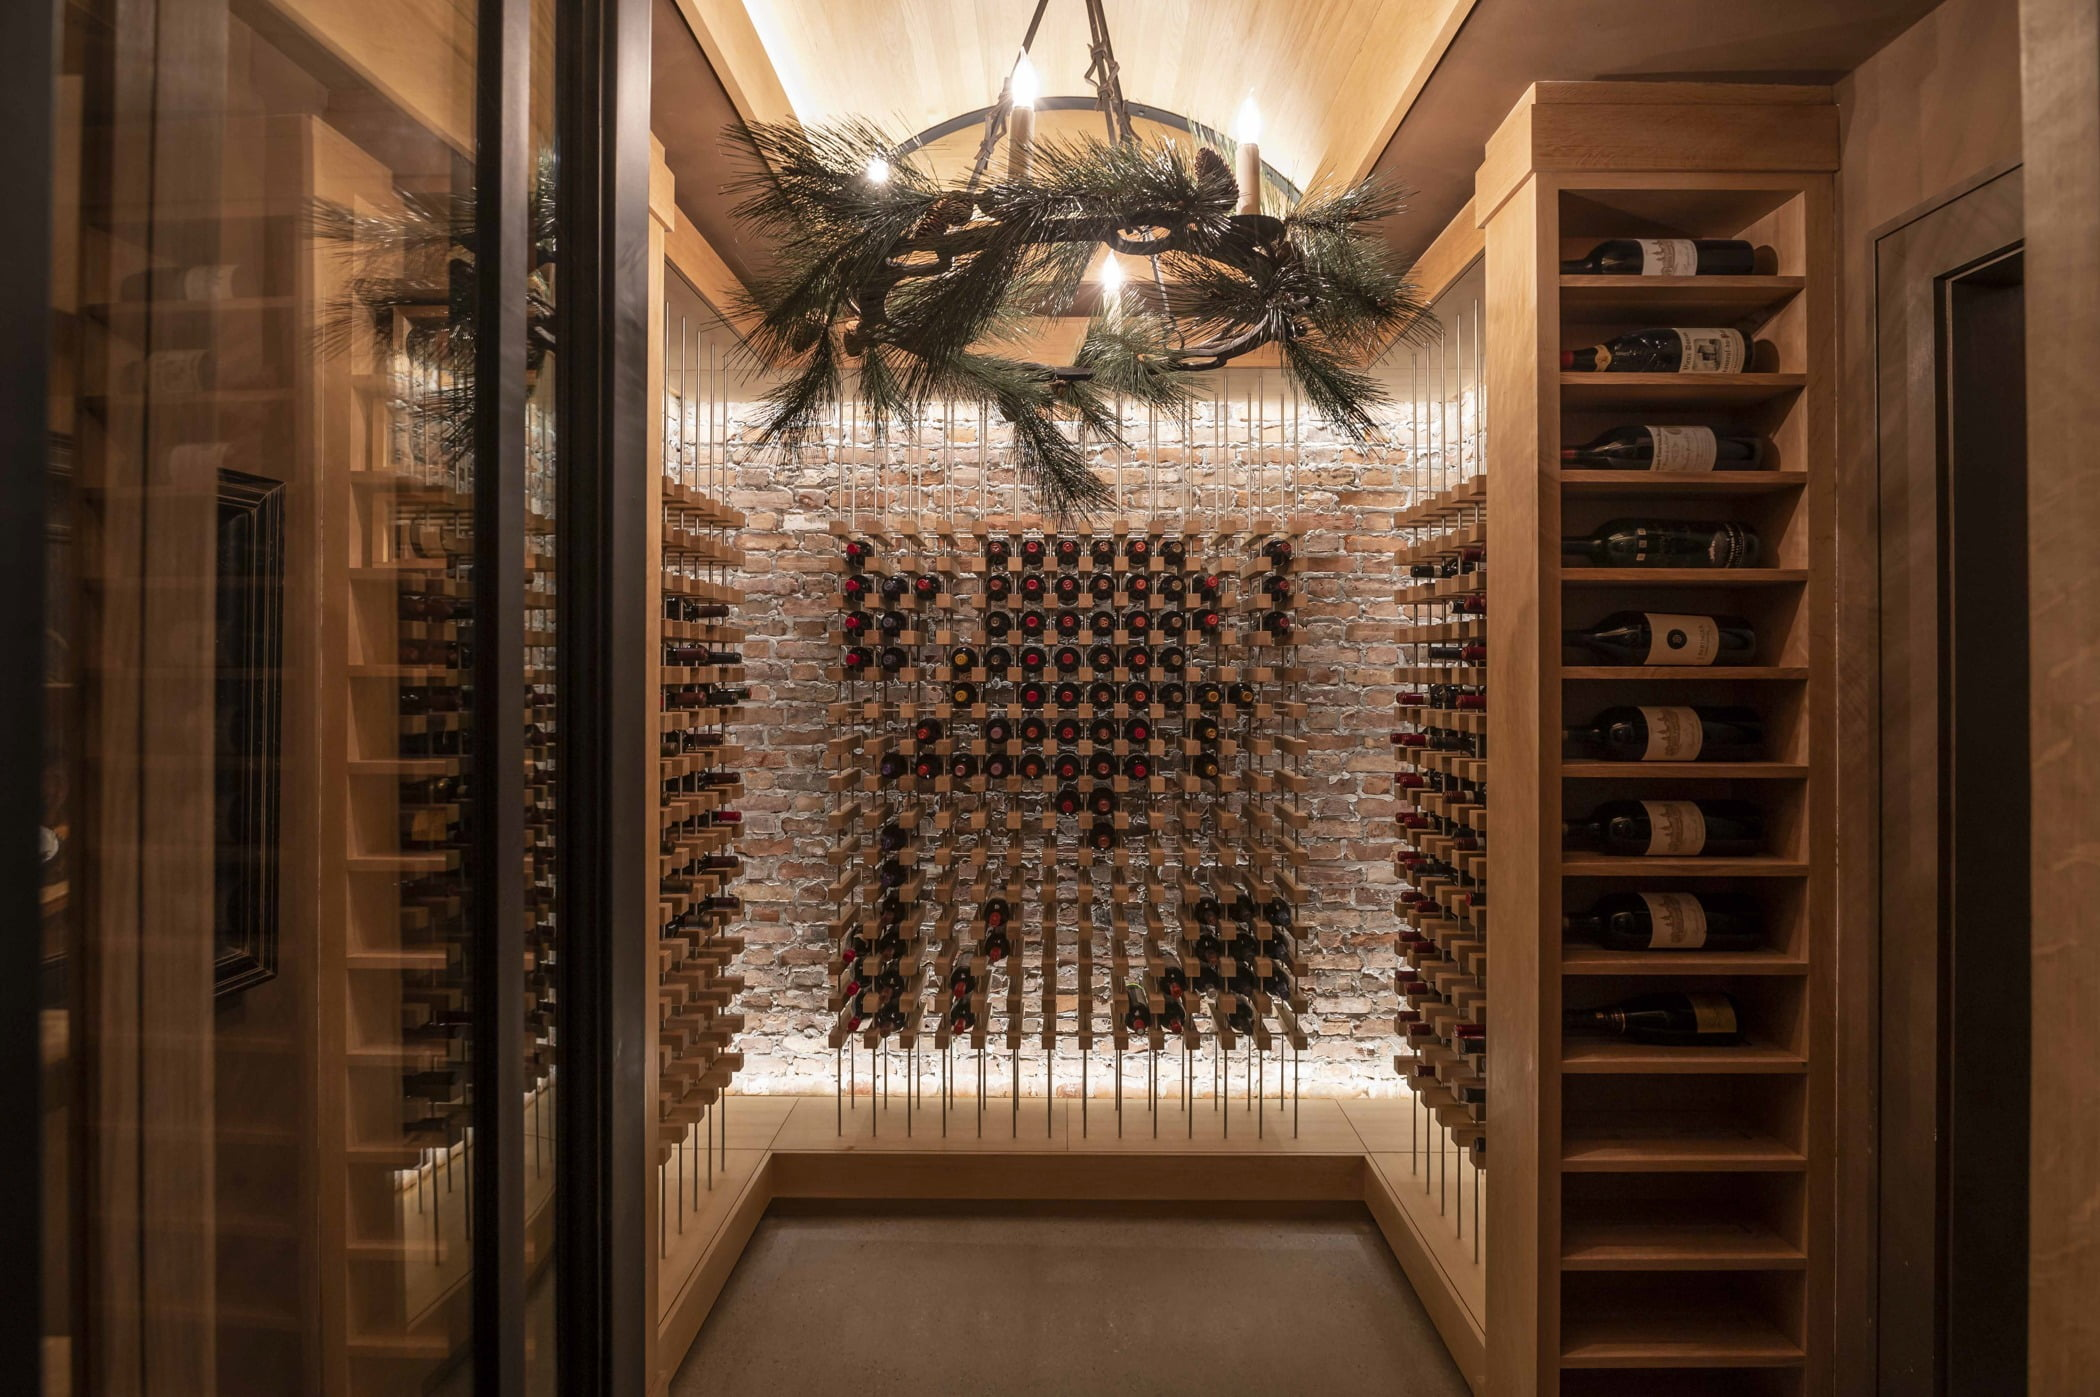 Custom wine cellar completed by Sunnyfields Cabinetry and Delbert Adams Construction Group (Different view)